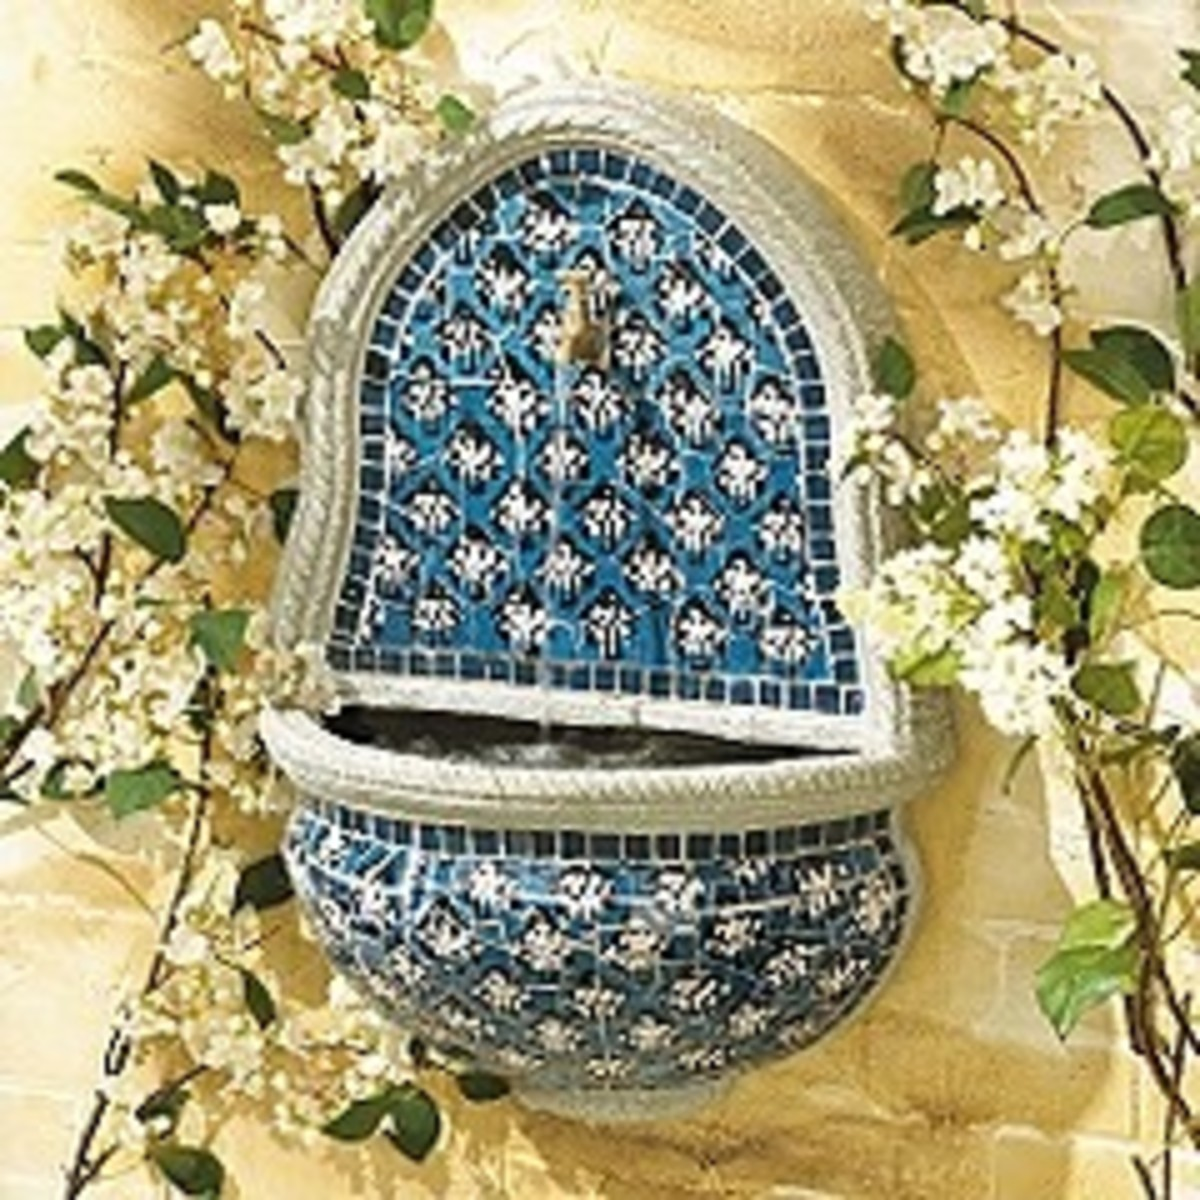 blue and white water fountain - ideal for the Mediterranean garden